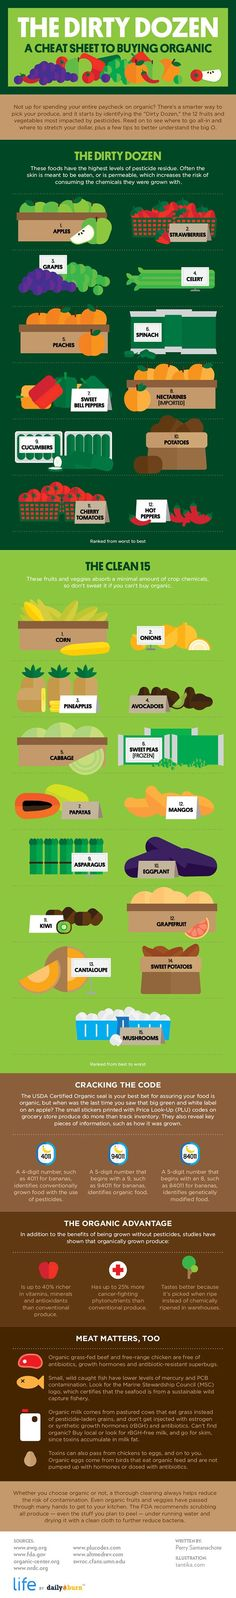 The food we eat.  What is the best produce to buy?  Great graphic!